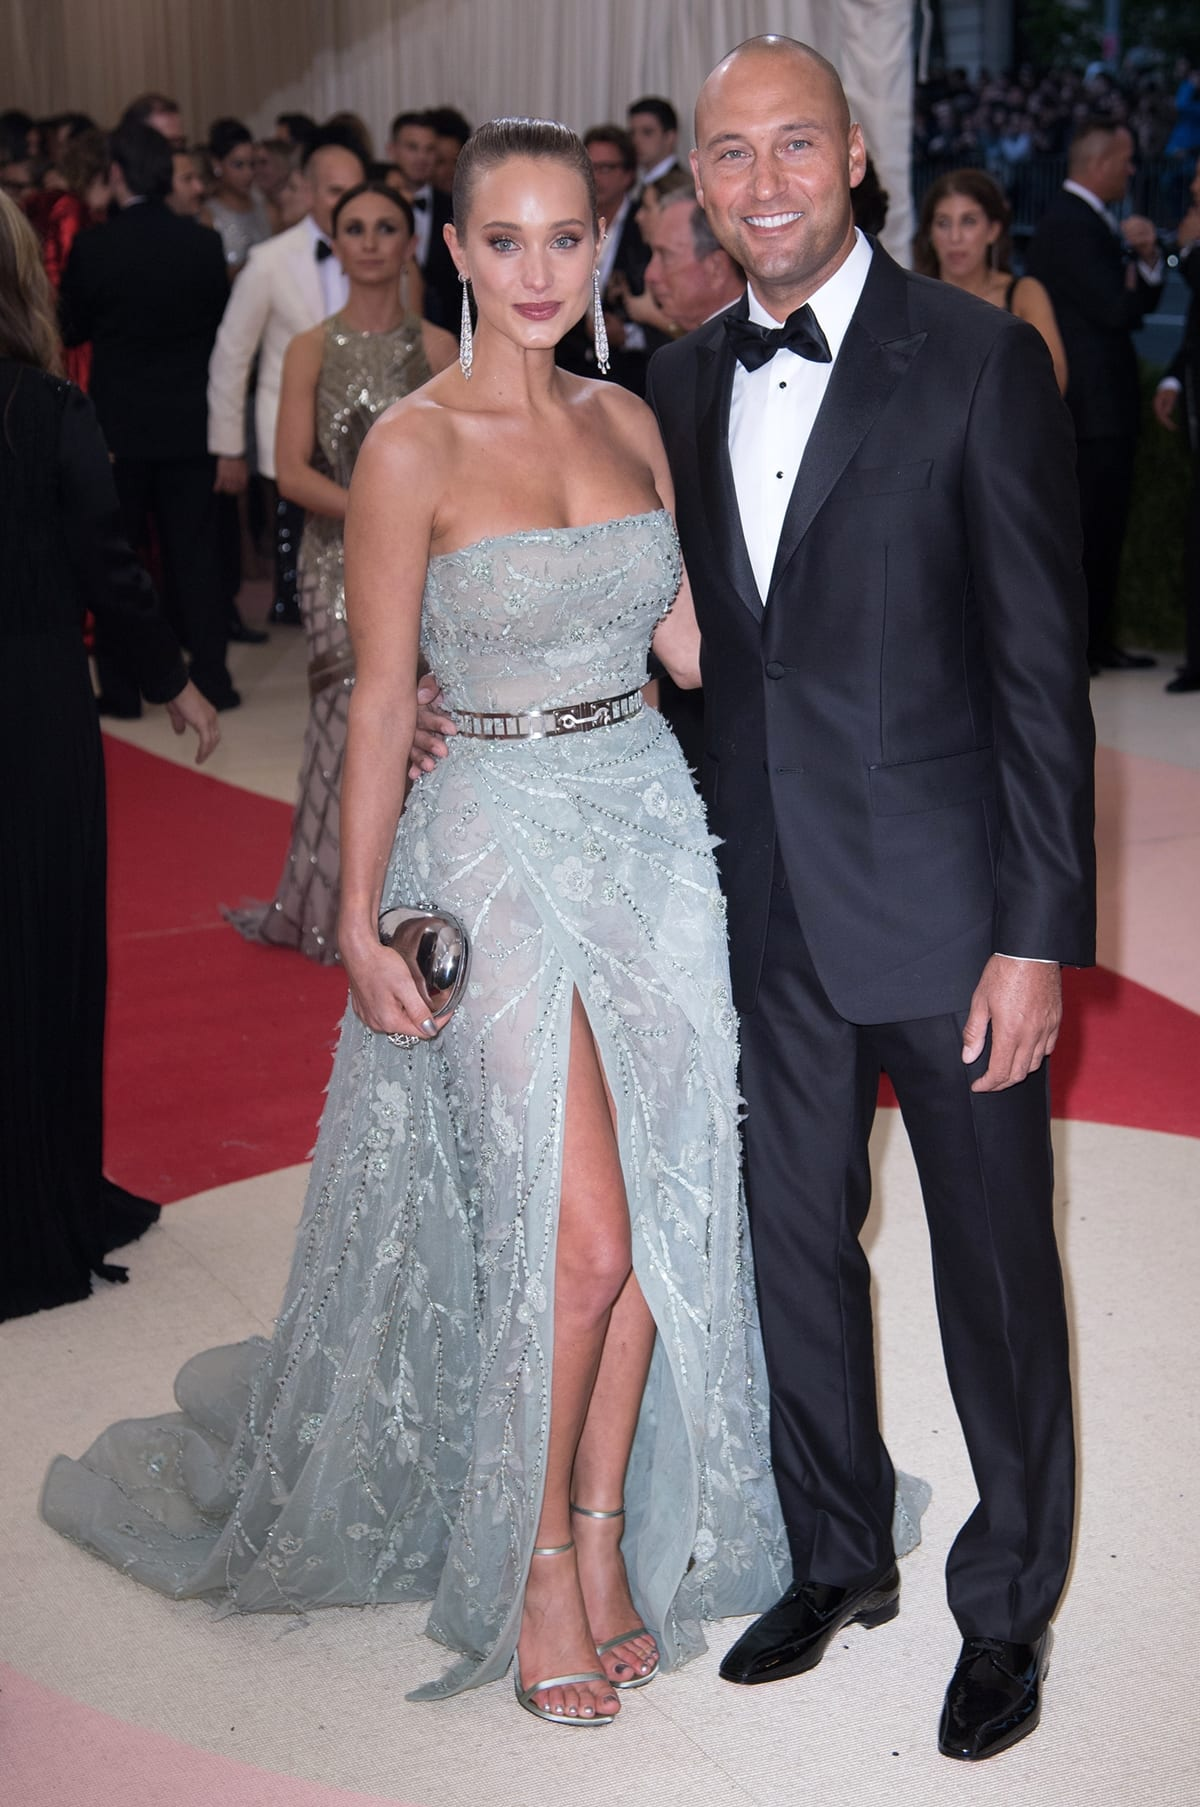 Sports Illustrated Swimsuit Issue model Hannah Davis and former New York Yankees shortstop Derek Jeter married on July 9, 2016, in Napa Valley